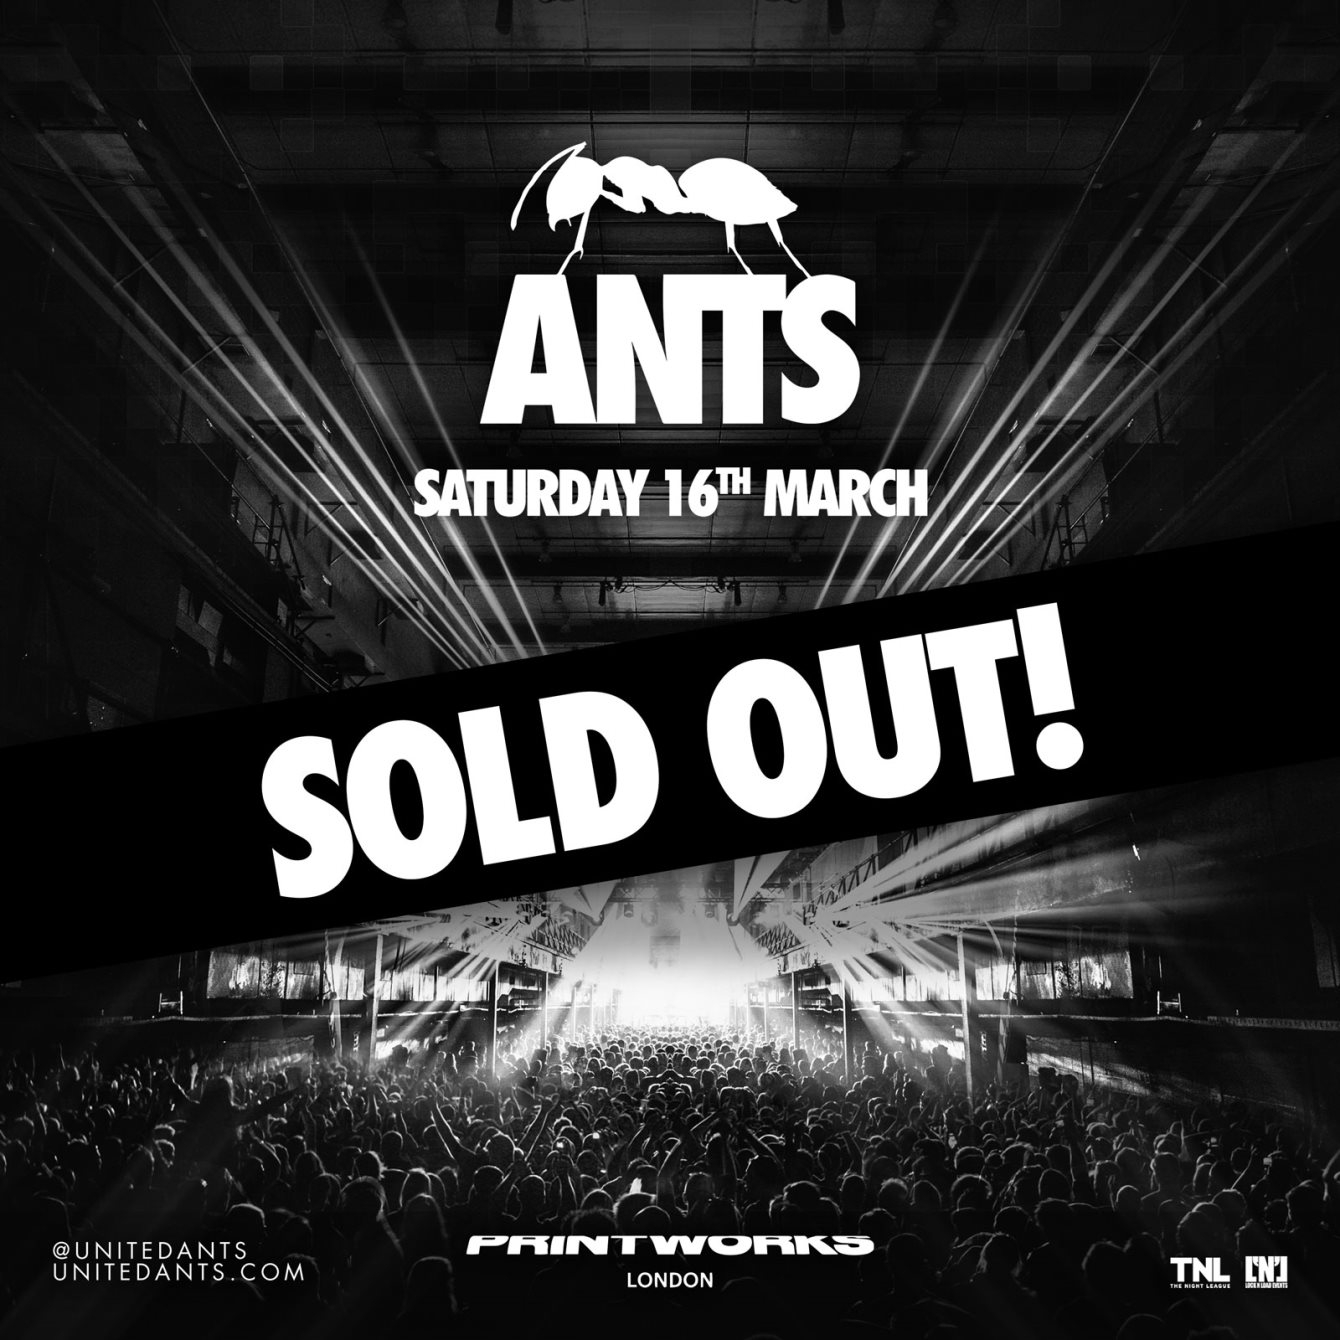 ANTS - Flyer front